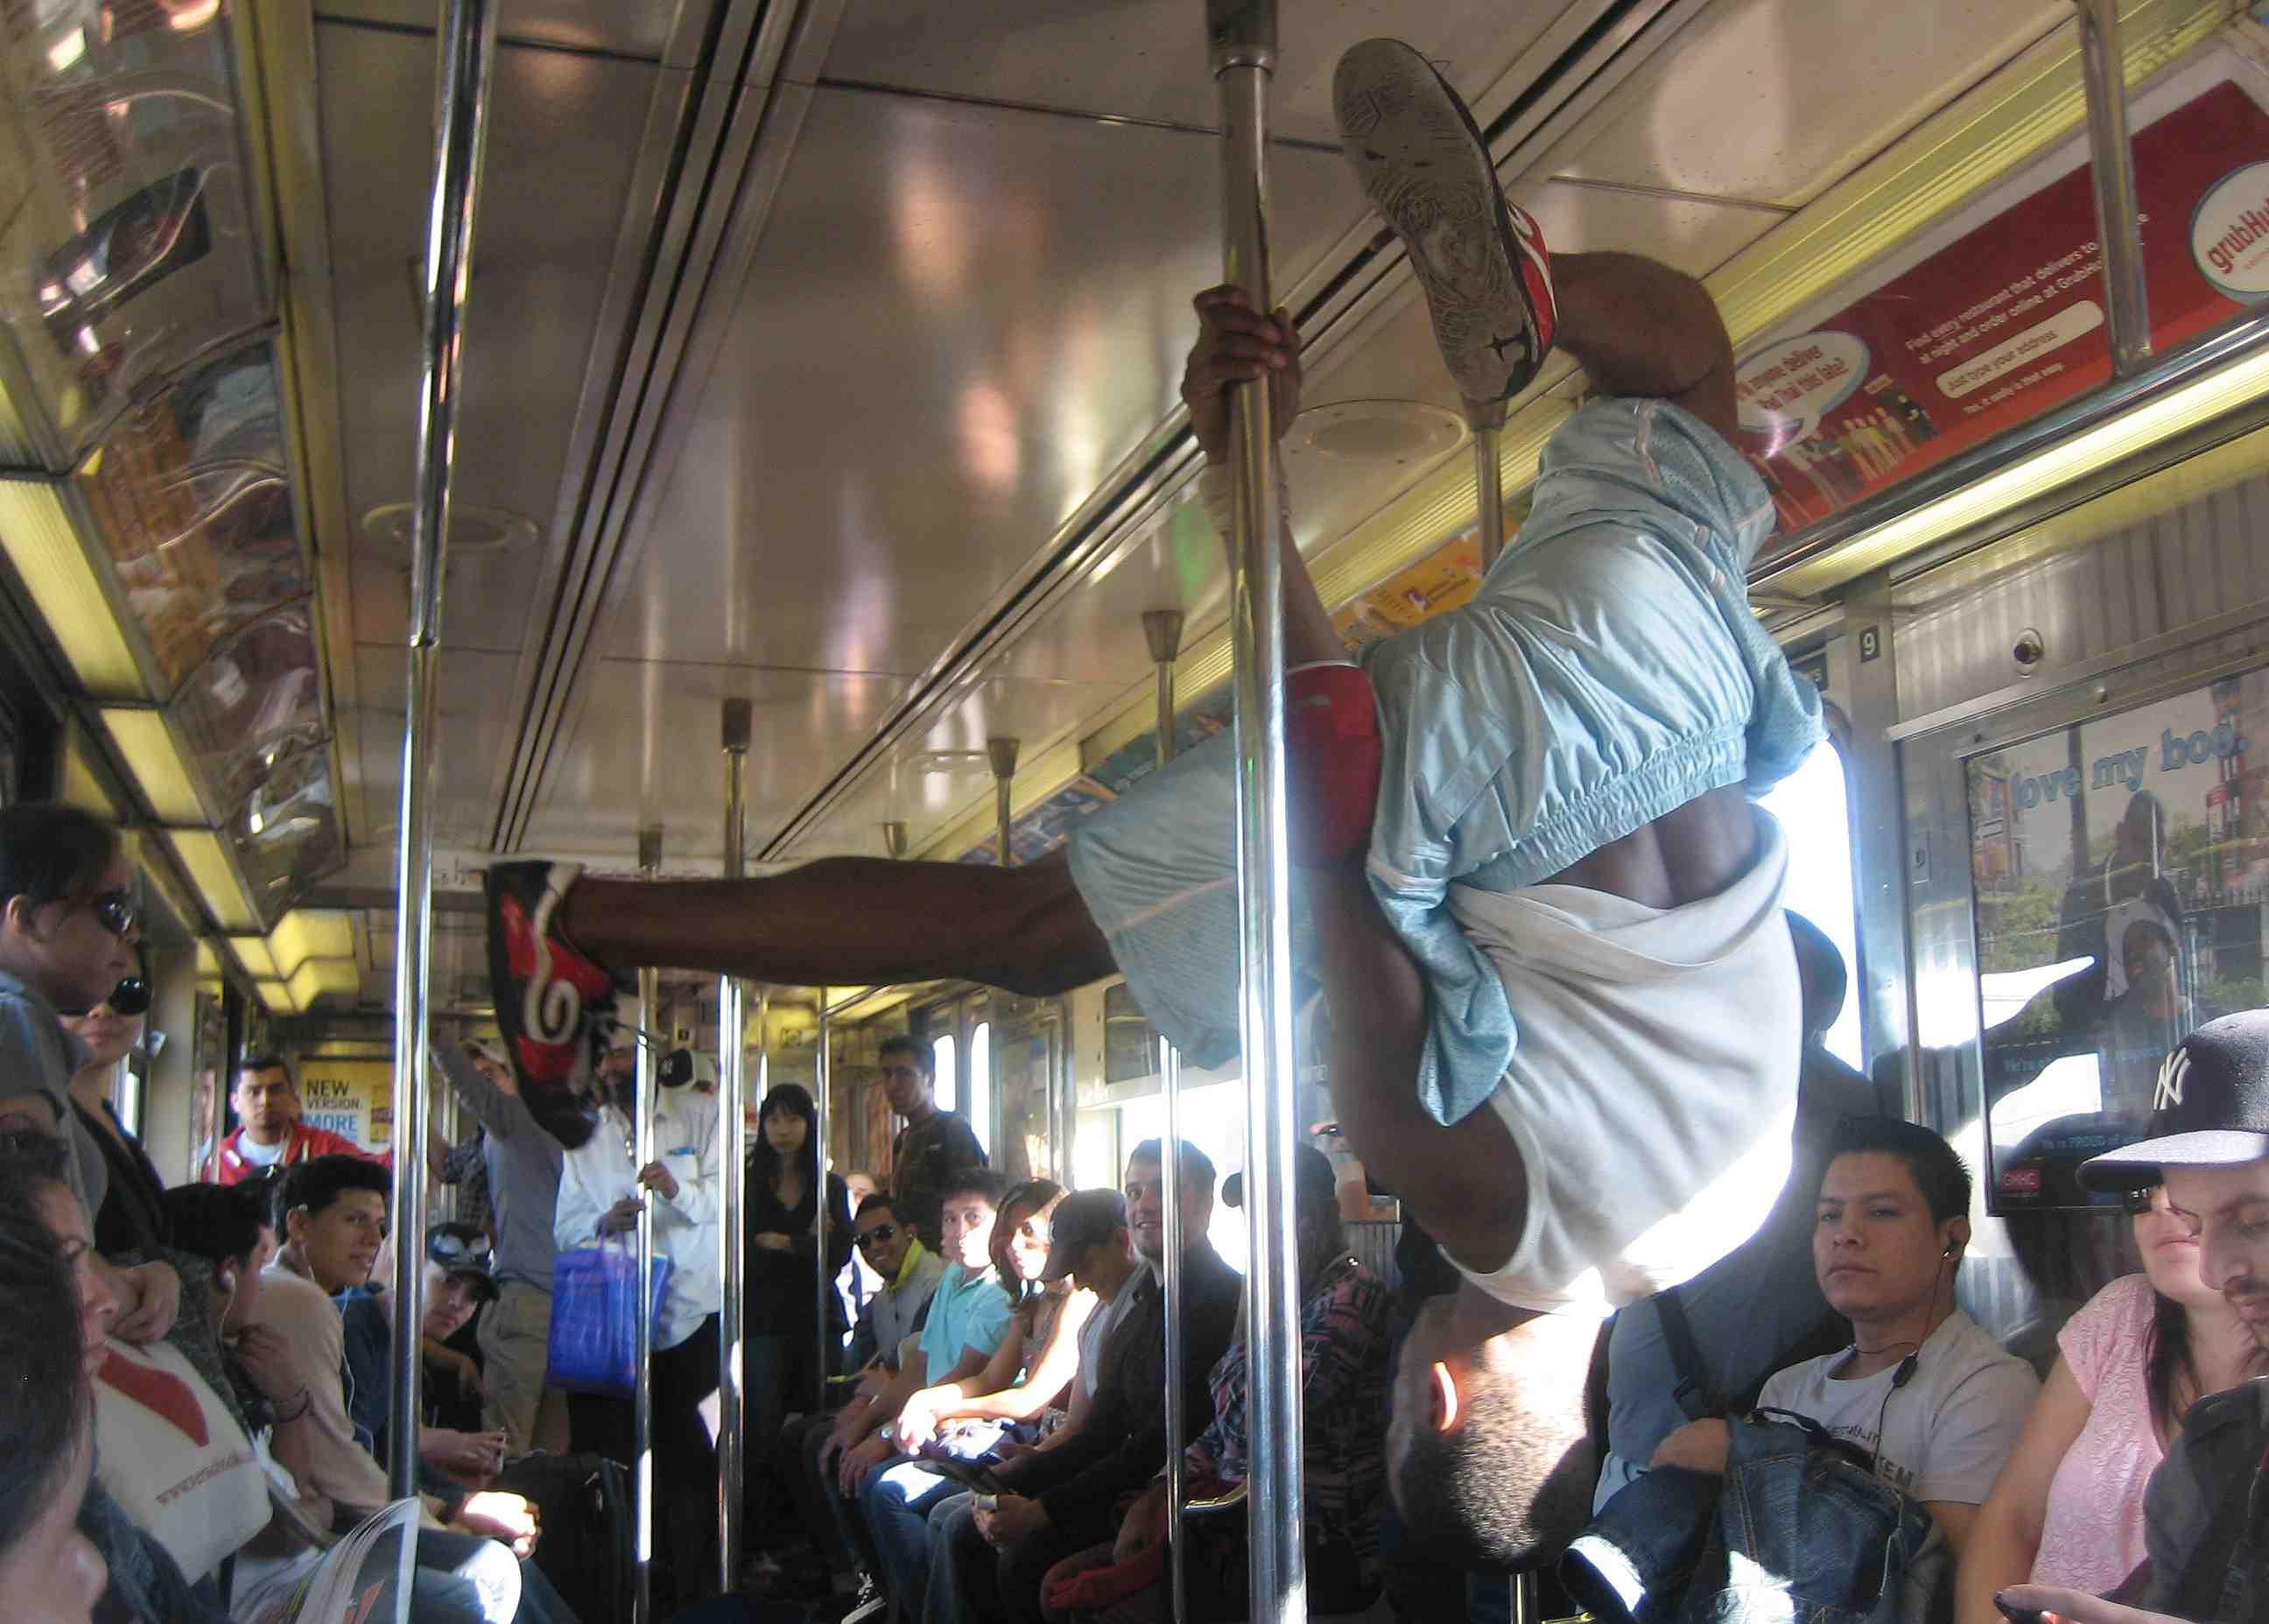 Notes From The Underground: LA vs NYC subways